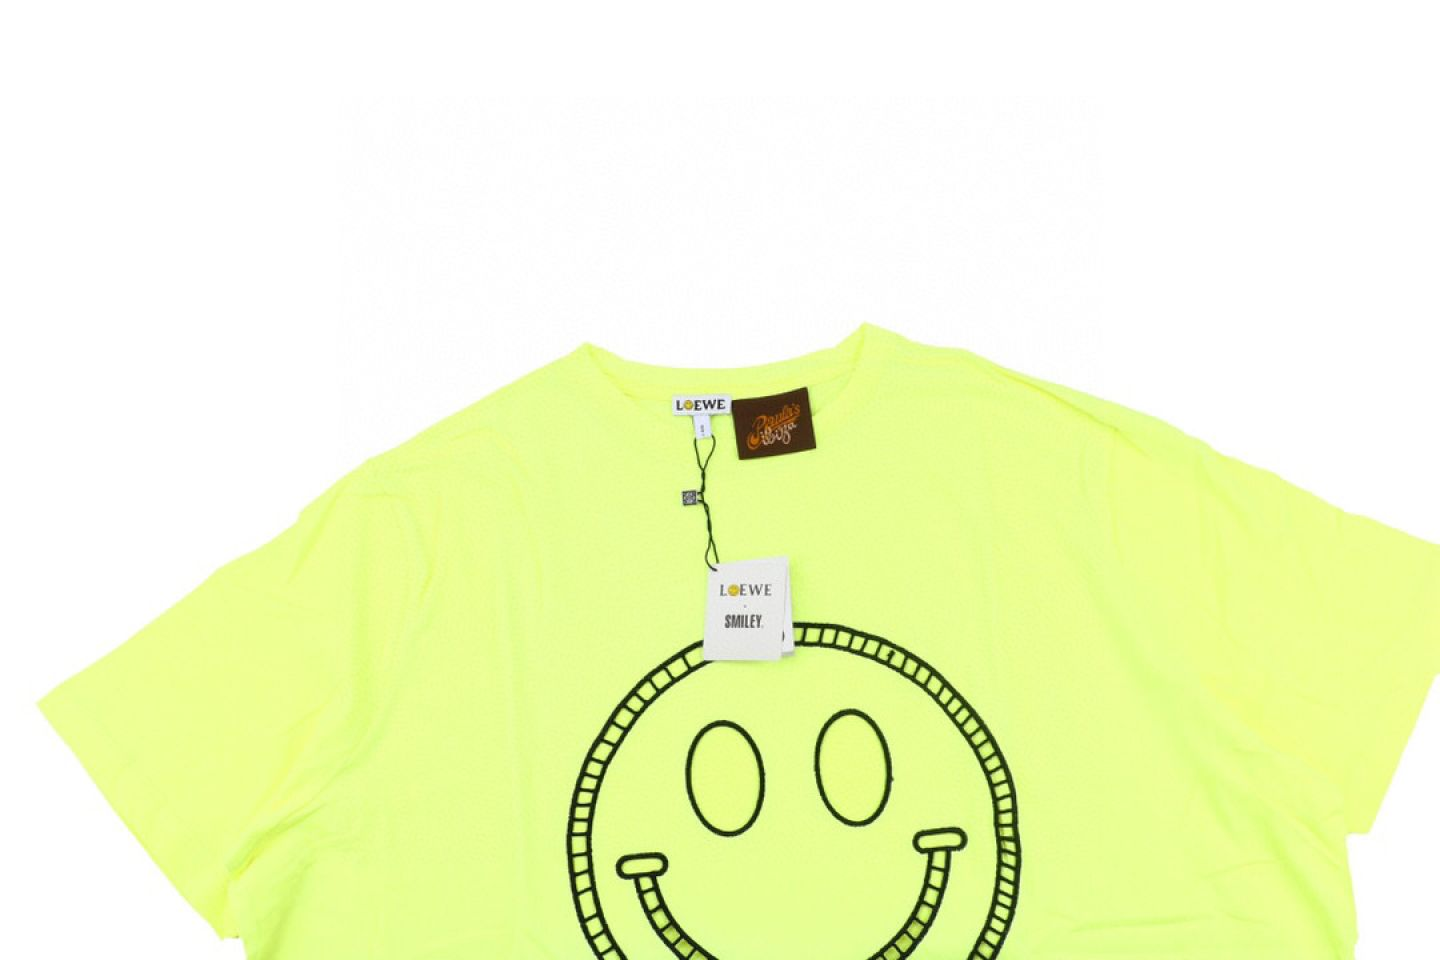 Shirt LOEWE x SMILEY 20ss fluorescent smiley short sleeve T-shirt yellow 3 loewe_x_smiley_20ss_fluorescent_smiley_short_sleeve_t_shirt_yellow_3